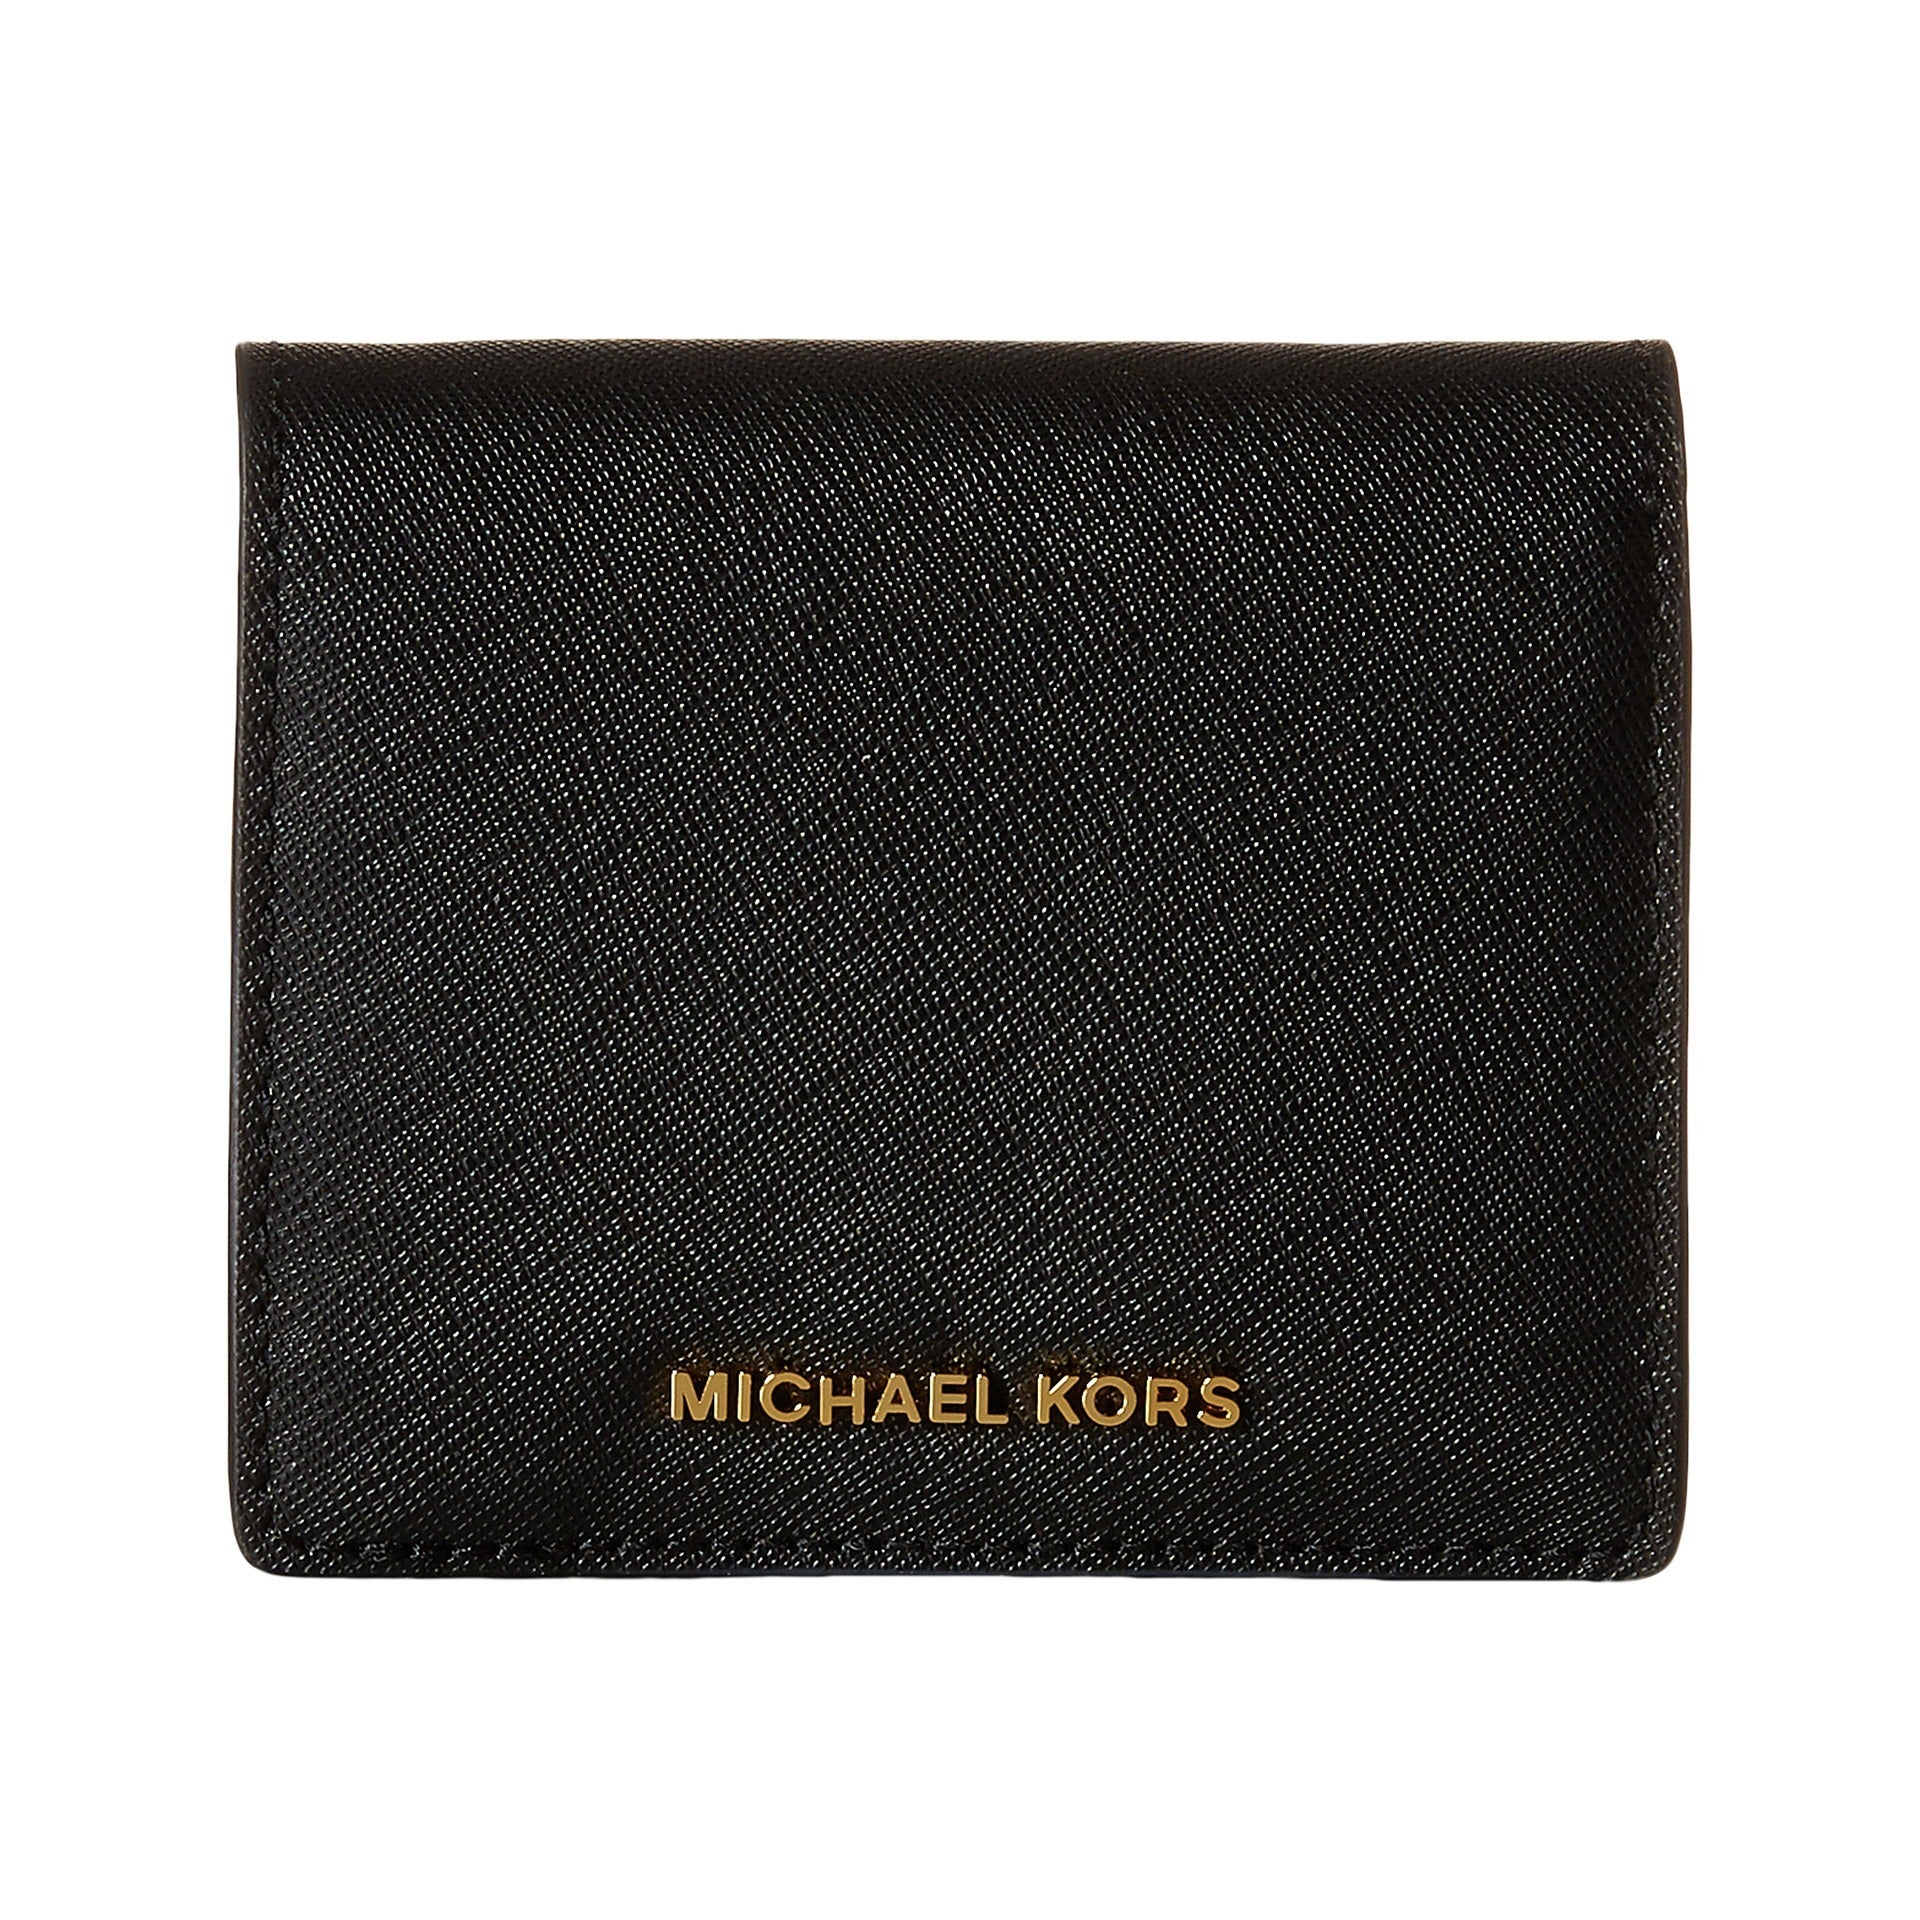 e5ca075a10b6 Shop Michael Kors Jet Set Black Travel Saffiano Leather Card Holder - Free  Shipping Today - Overstock - 12635157